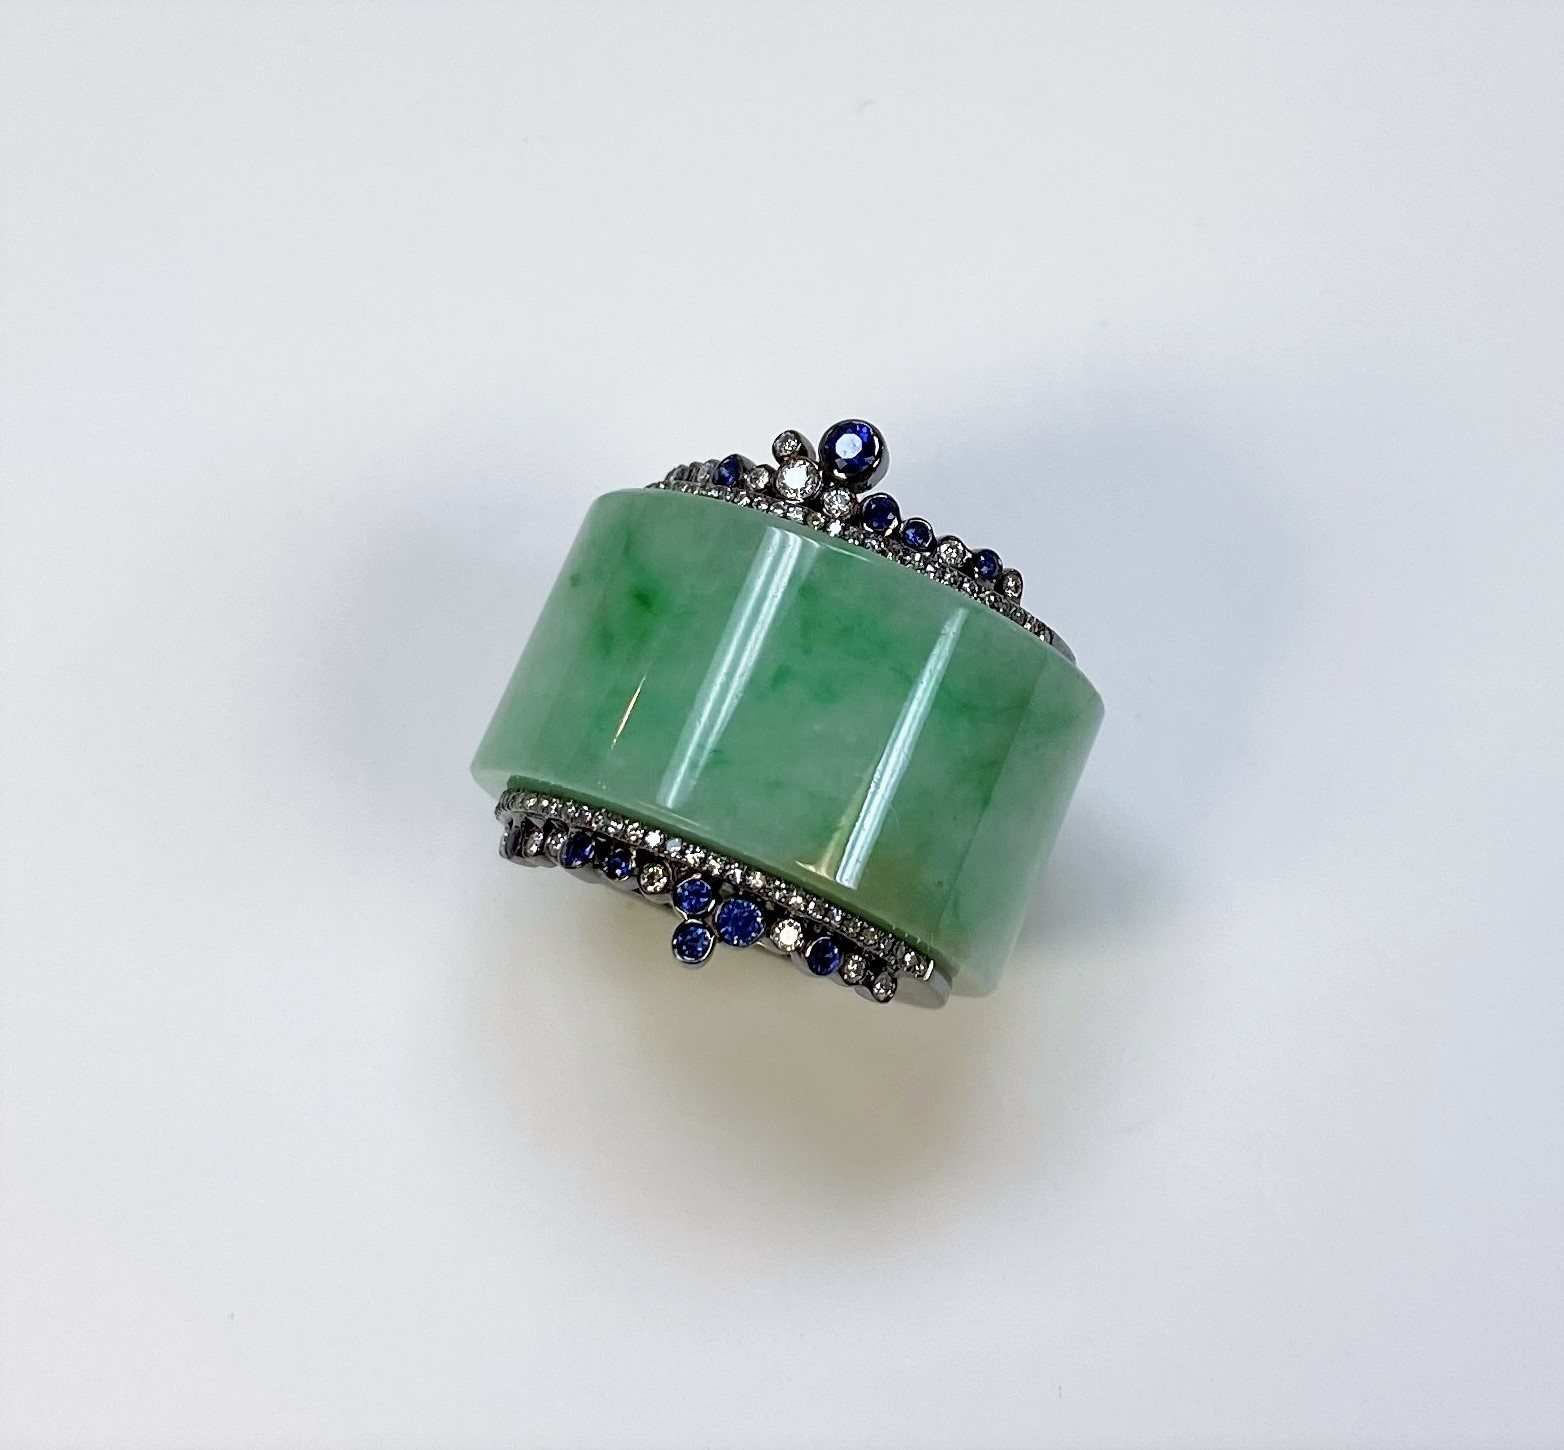 Natural Green Jade Ring With Diamonds & Sapphires